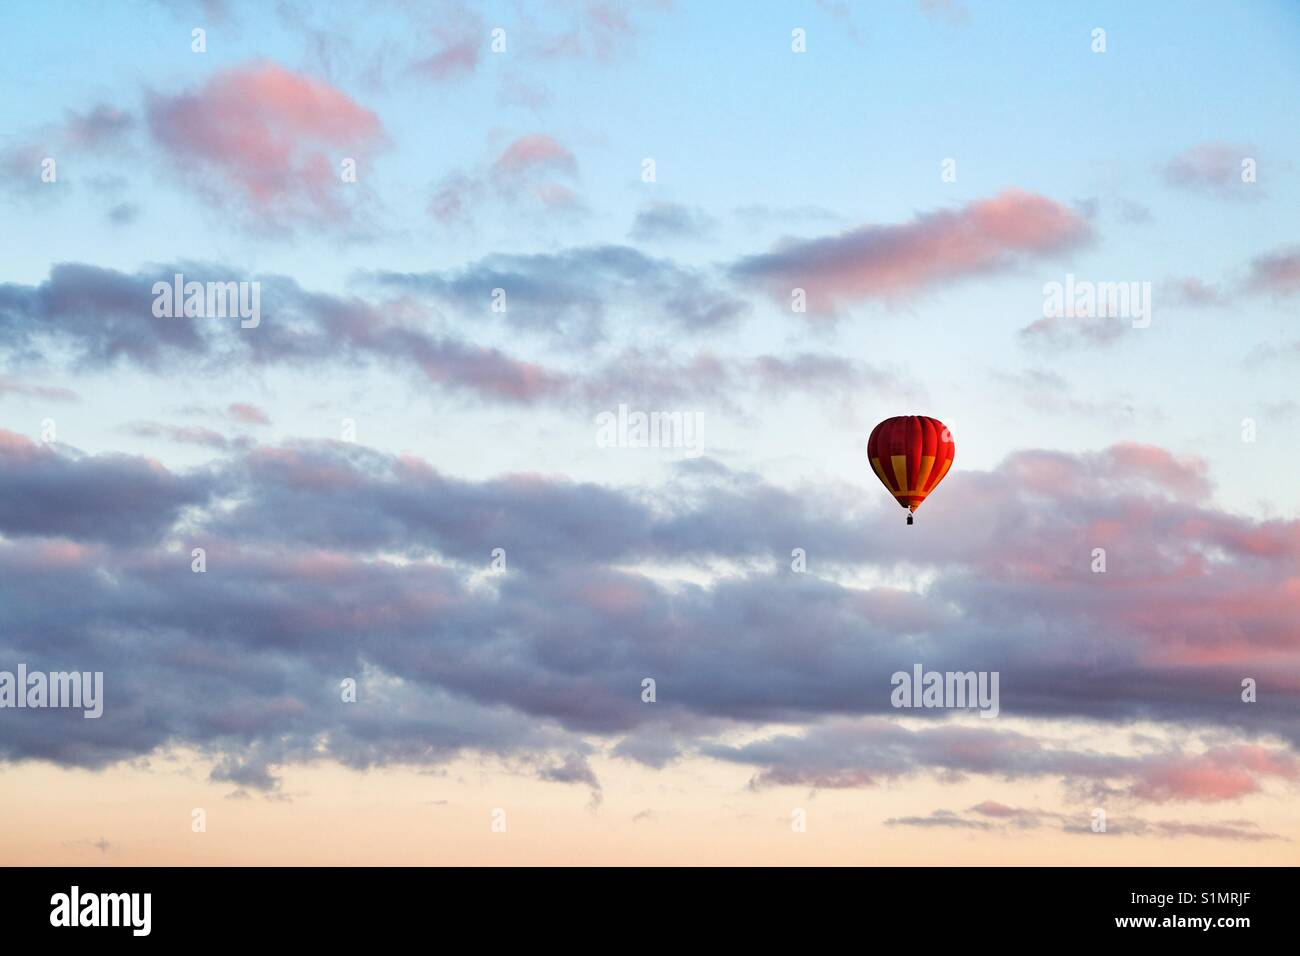 A baloon on a sunset sky - Stock Image